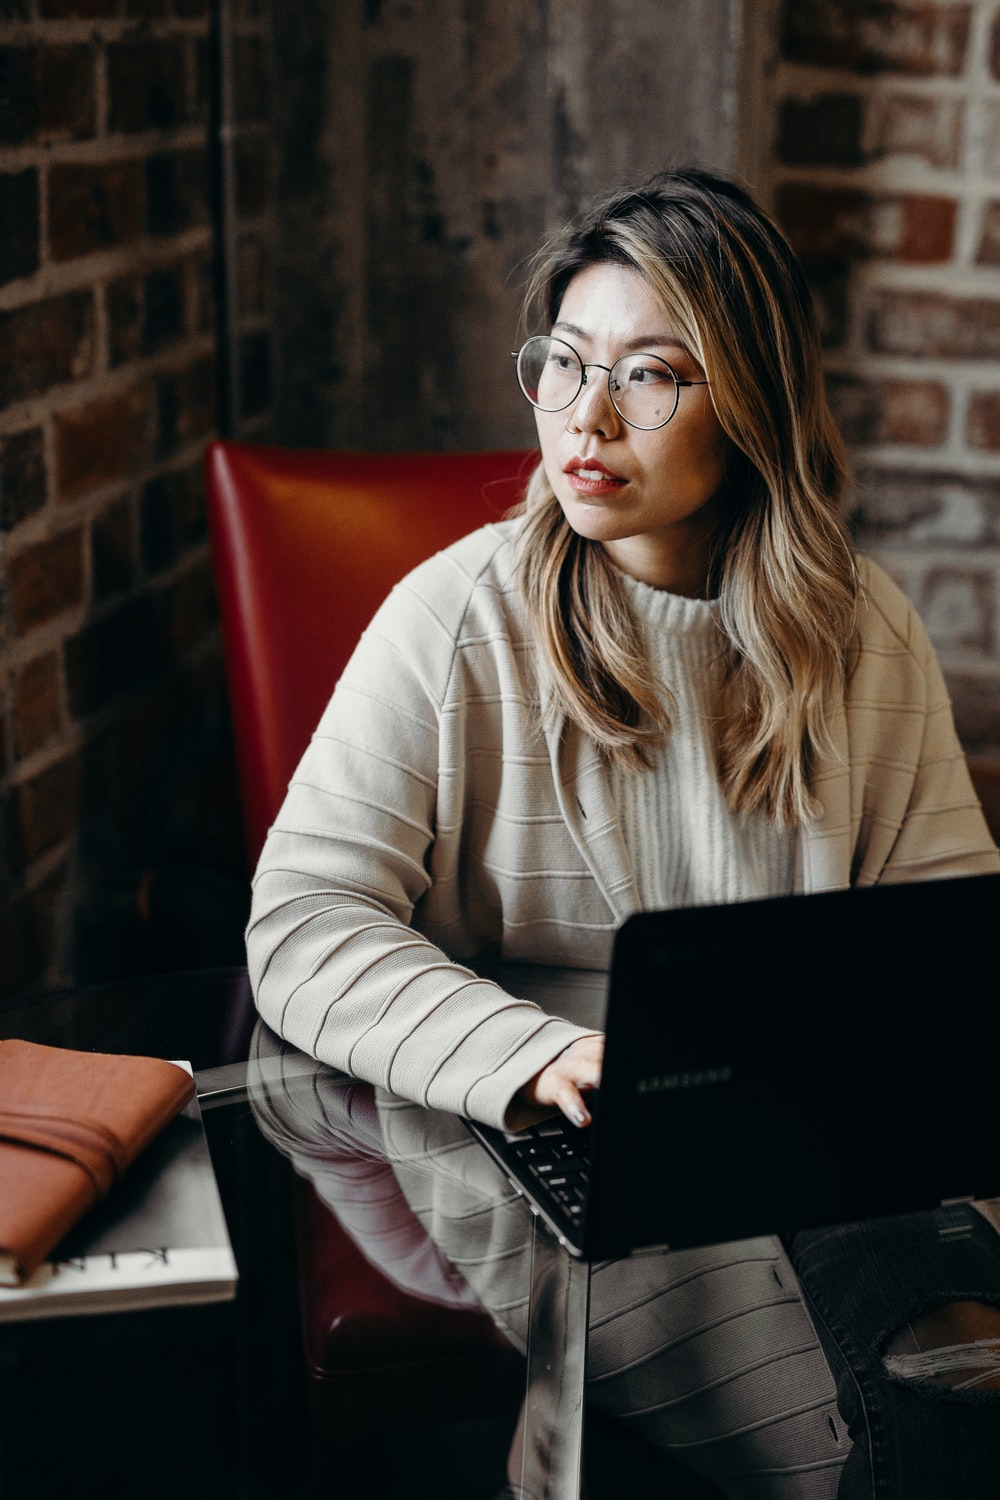 woman looking sideways while holding black laptop computer